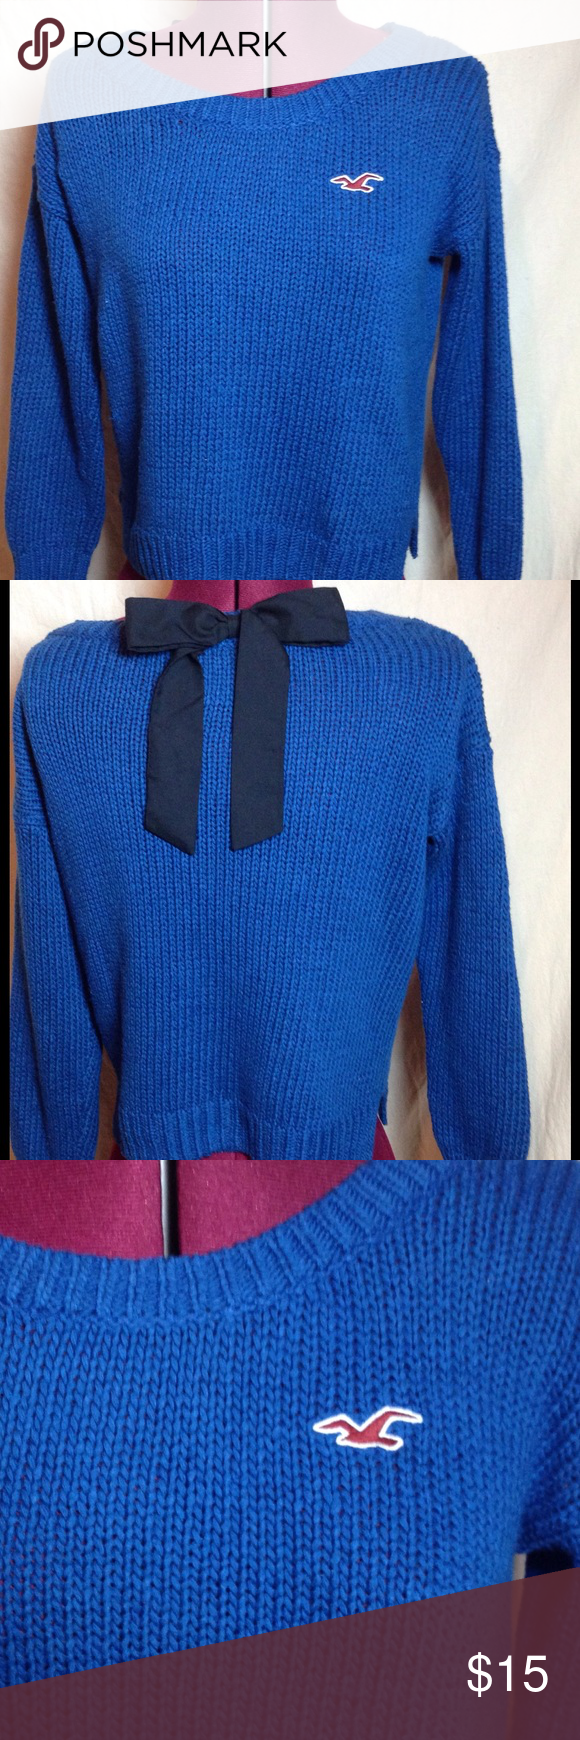 """Royal blue Hollister sweater with bow.  Size small Absolutely adorable sweater.  Cute with skirt,jeans, shorts....perfect for a cool summer day or eve.  3/4 length sleeves and black bow in back.  EUC.  Shoulder to hem 19.5"""".  Underarm to underarm 20"""".  60% cotton, 40% acrylic. Hollister Sweaters Crew & Scoop Necks"""